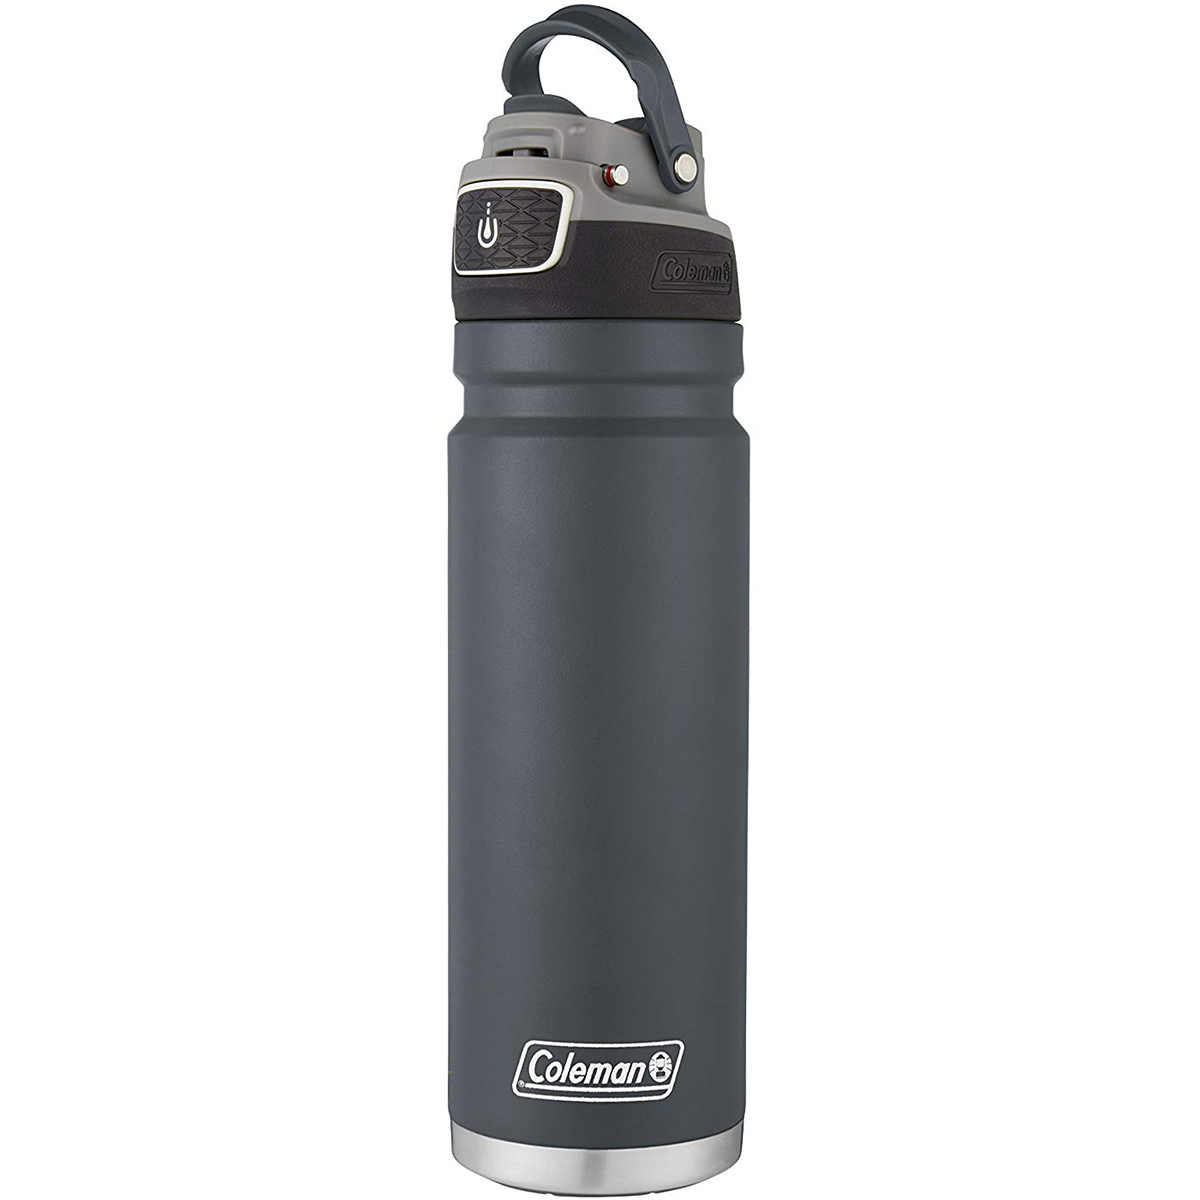 Coleman-24-oz-Free-Flow-Autoseal-Insulated-Stainless-Steel-Water-Bottle thumbnail 25